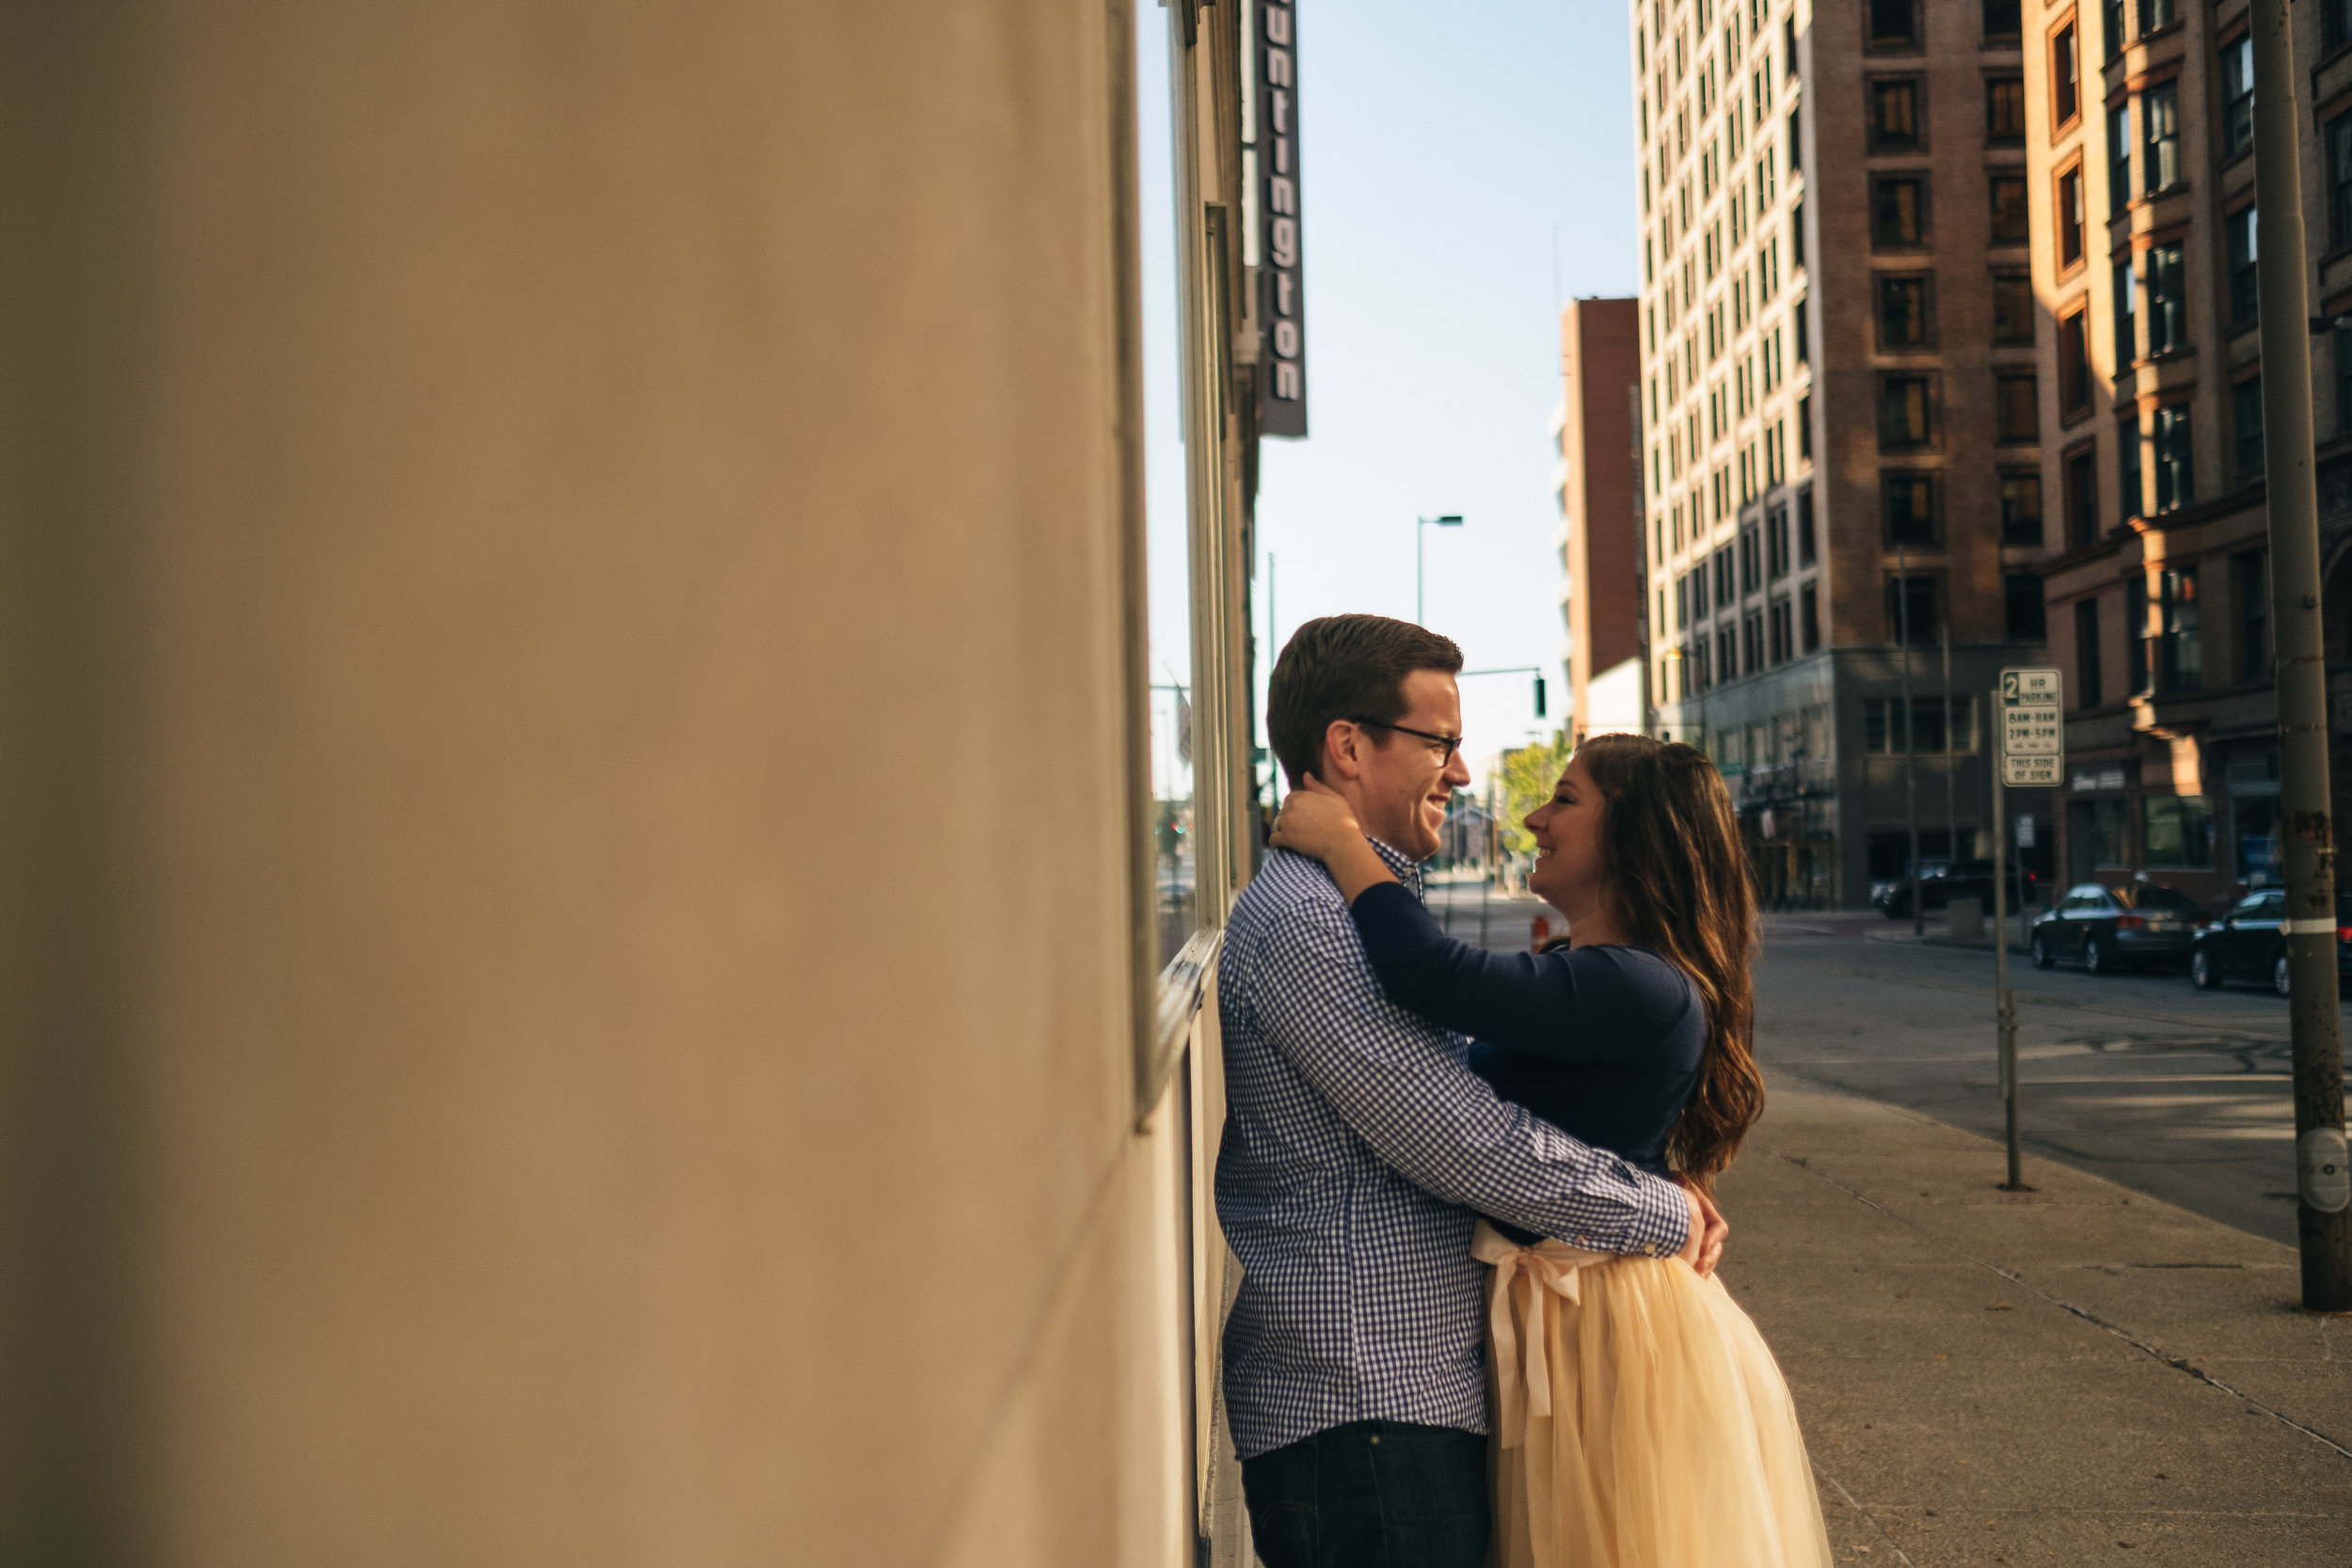 Downtown toledo, ballet-inspired engagement session